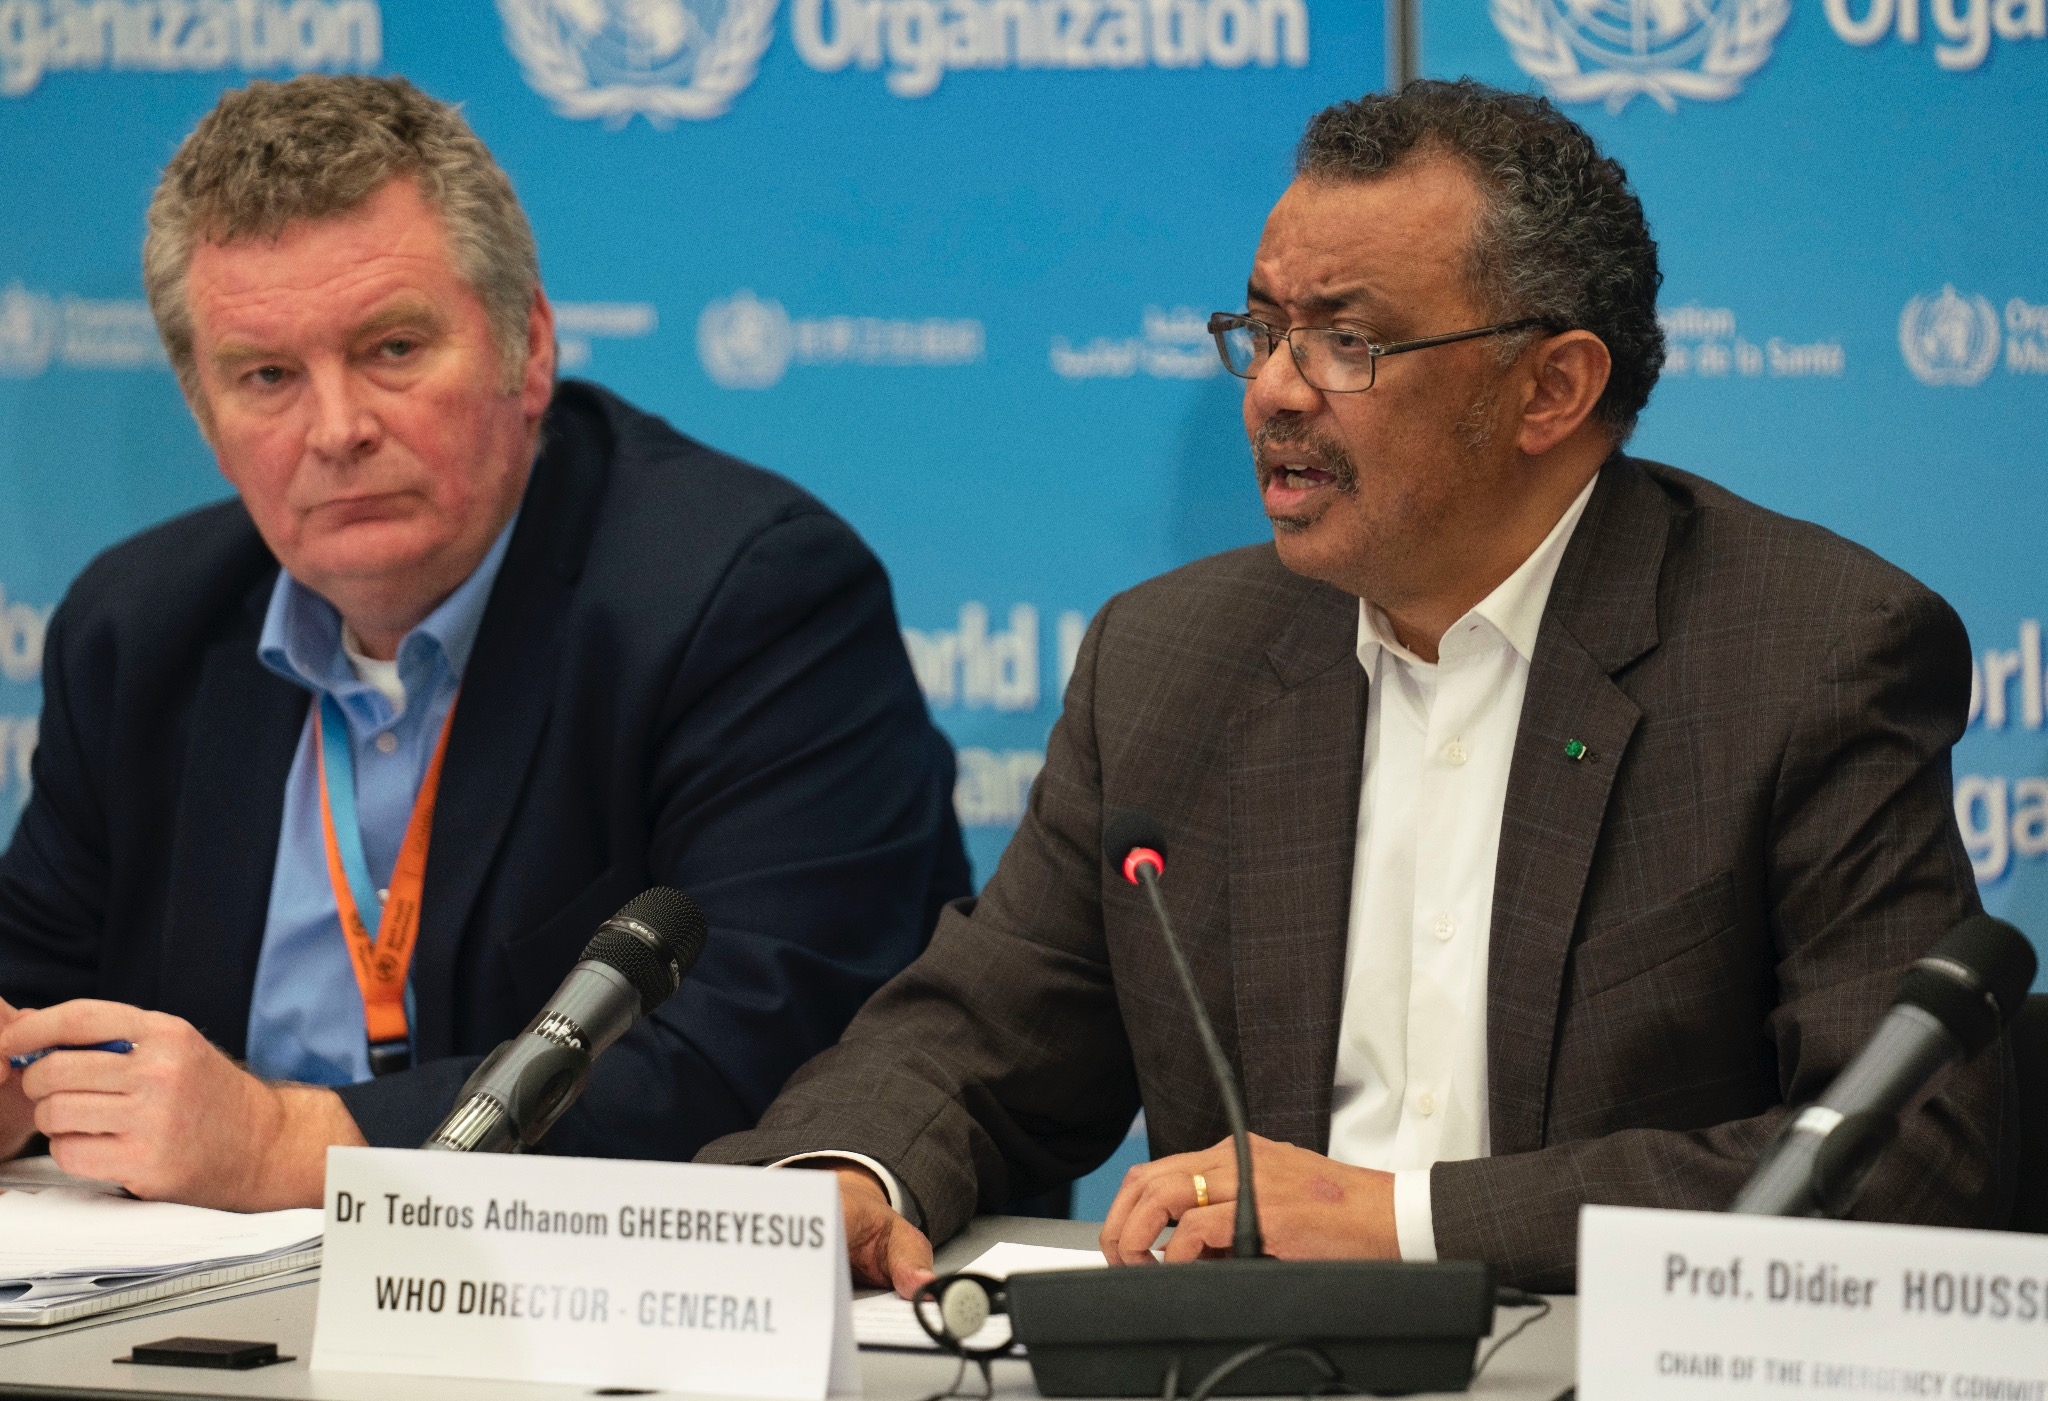 World Health Organisation Director-General Tedros Adhanom Ghebreyesus (right). Photo courtesy: Twitter/@WHO